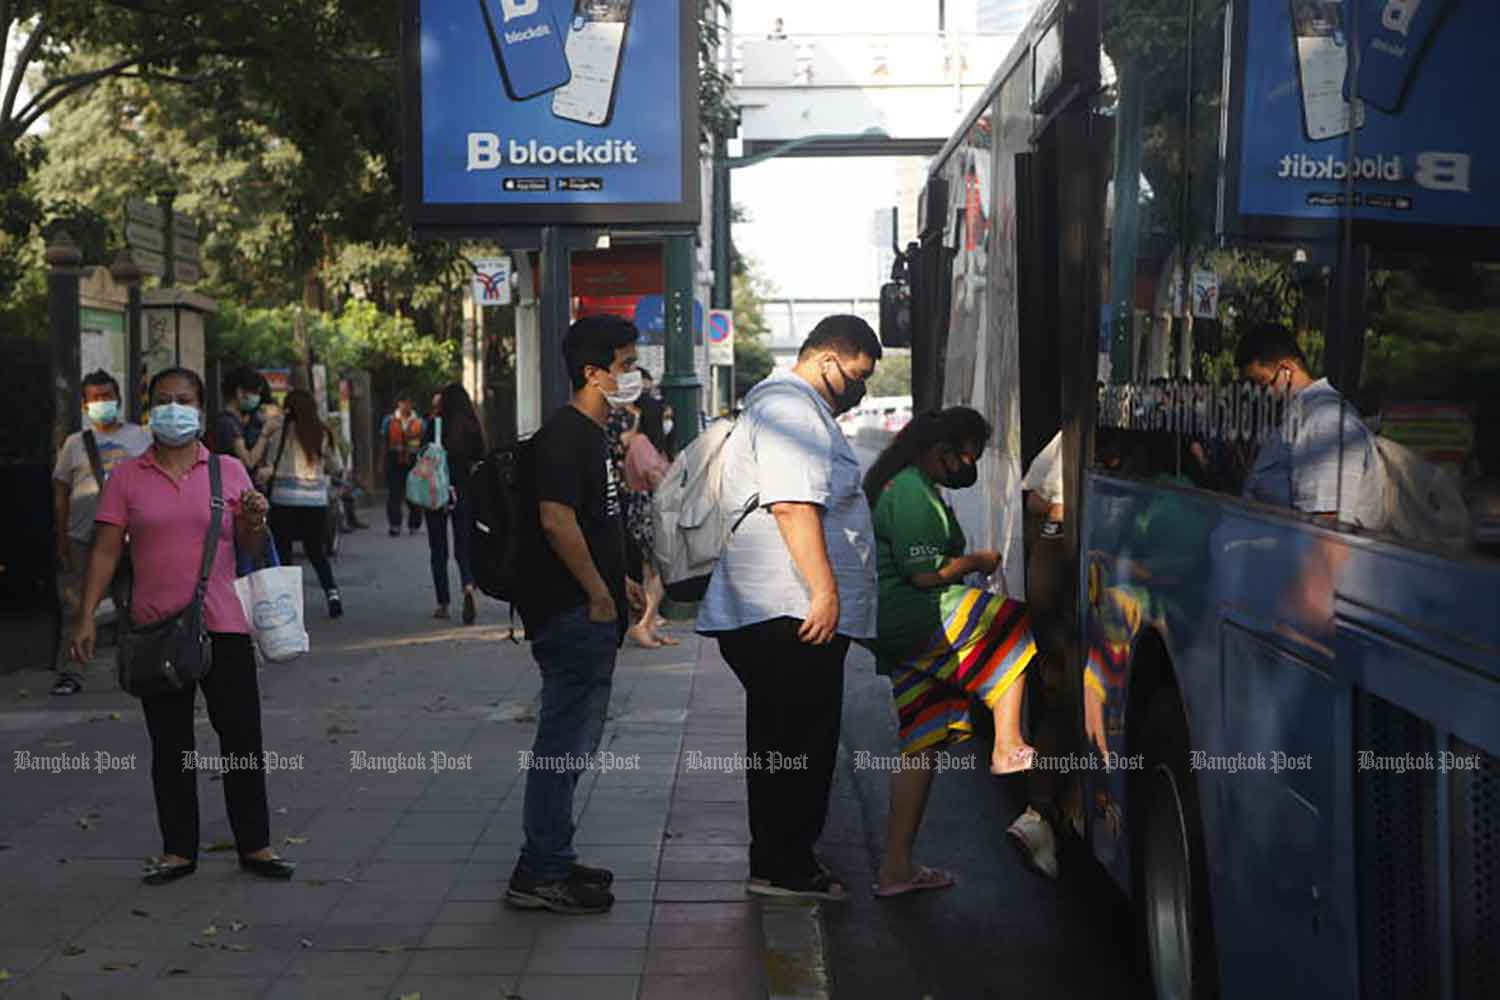 Commuters wearing face masks board a bus in Chatuchak district of Bangkok on Tuesday, when 819 new cases of Covid-19 disease were detected. (Photo: Nutthawat Wicheanbut)